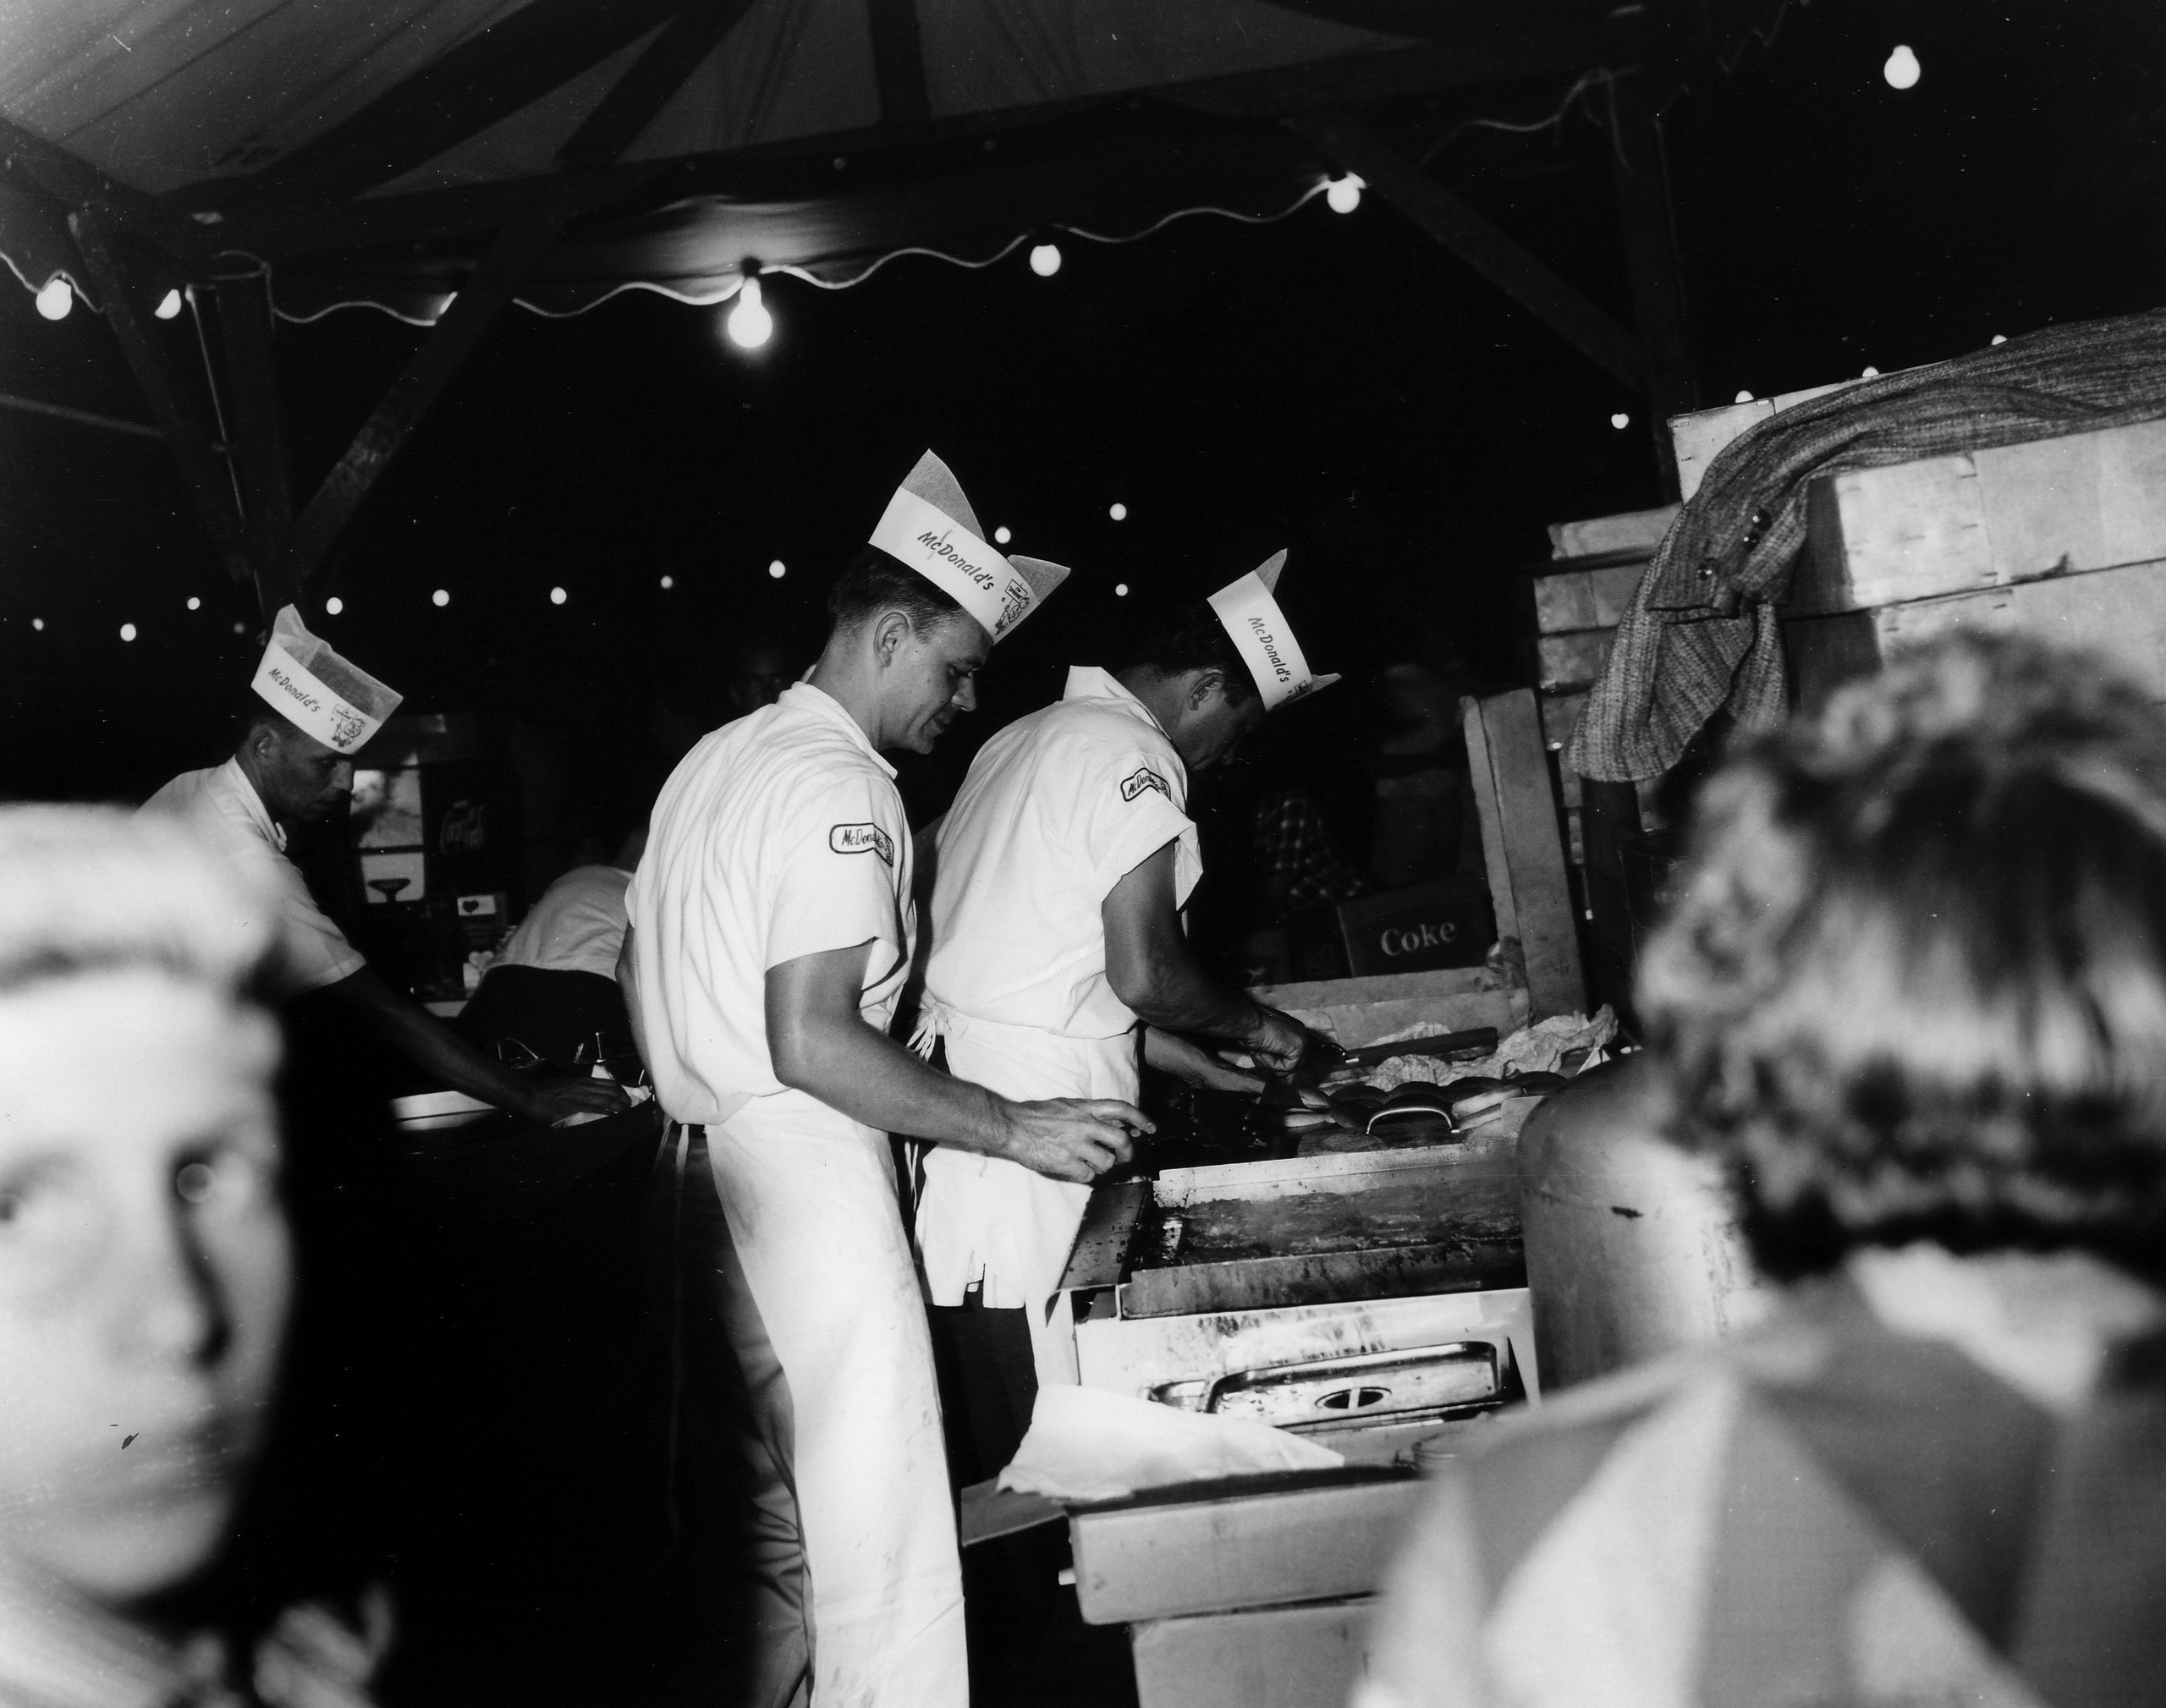 Future McDonald's Chairman Fred Turner, at the grill in 1956.